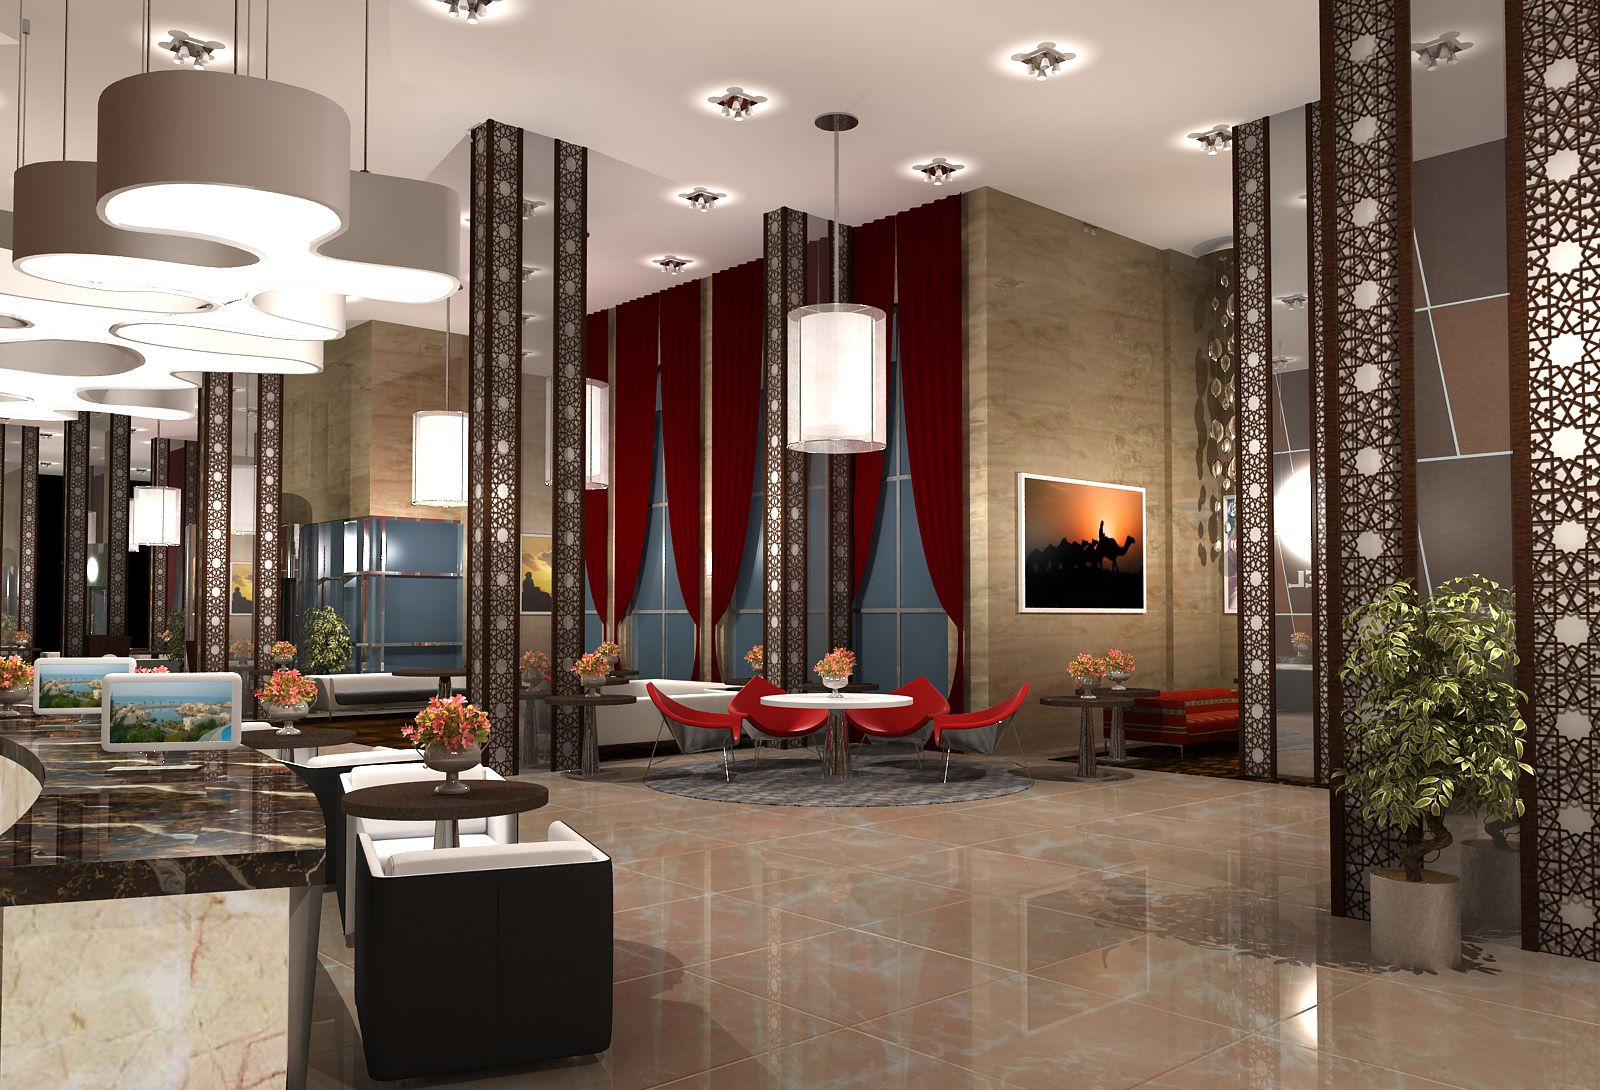 6 ways hotel lobbies teach us about interior design for Villa lobby interior design